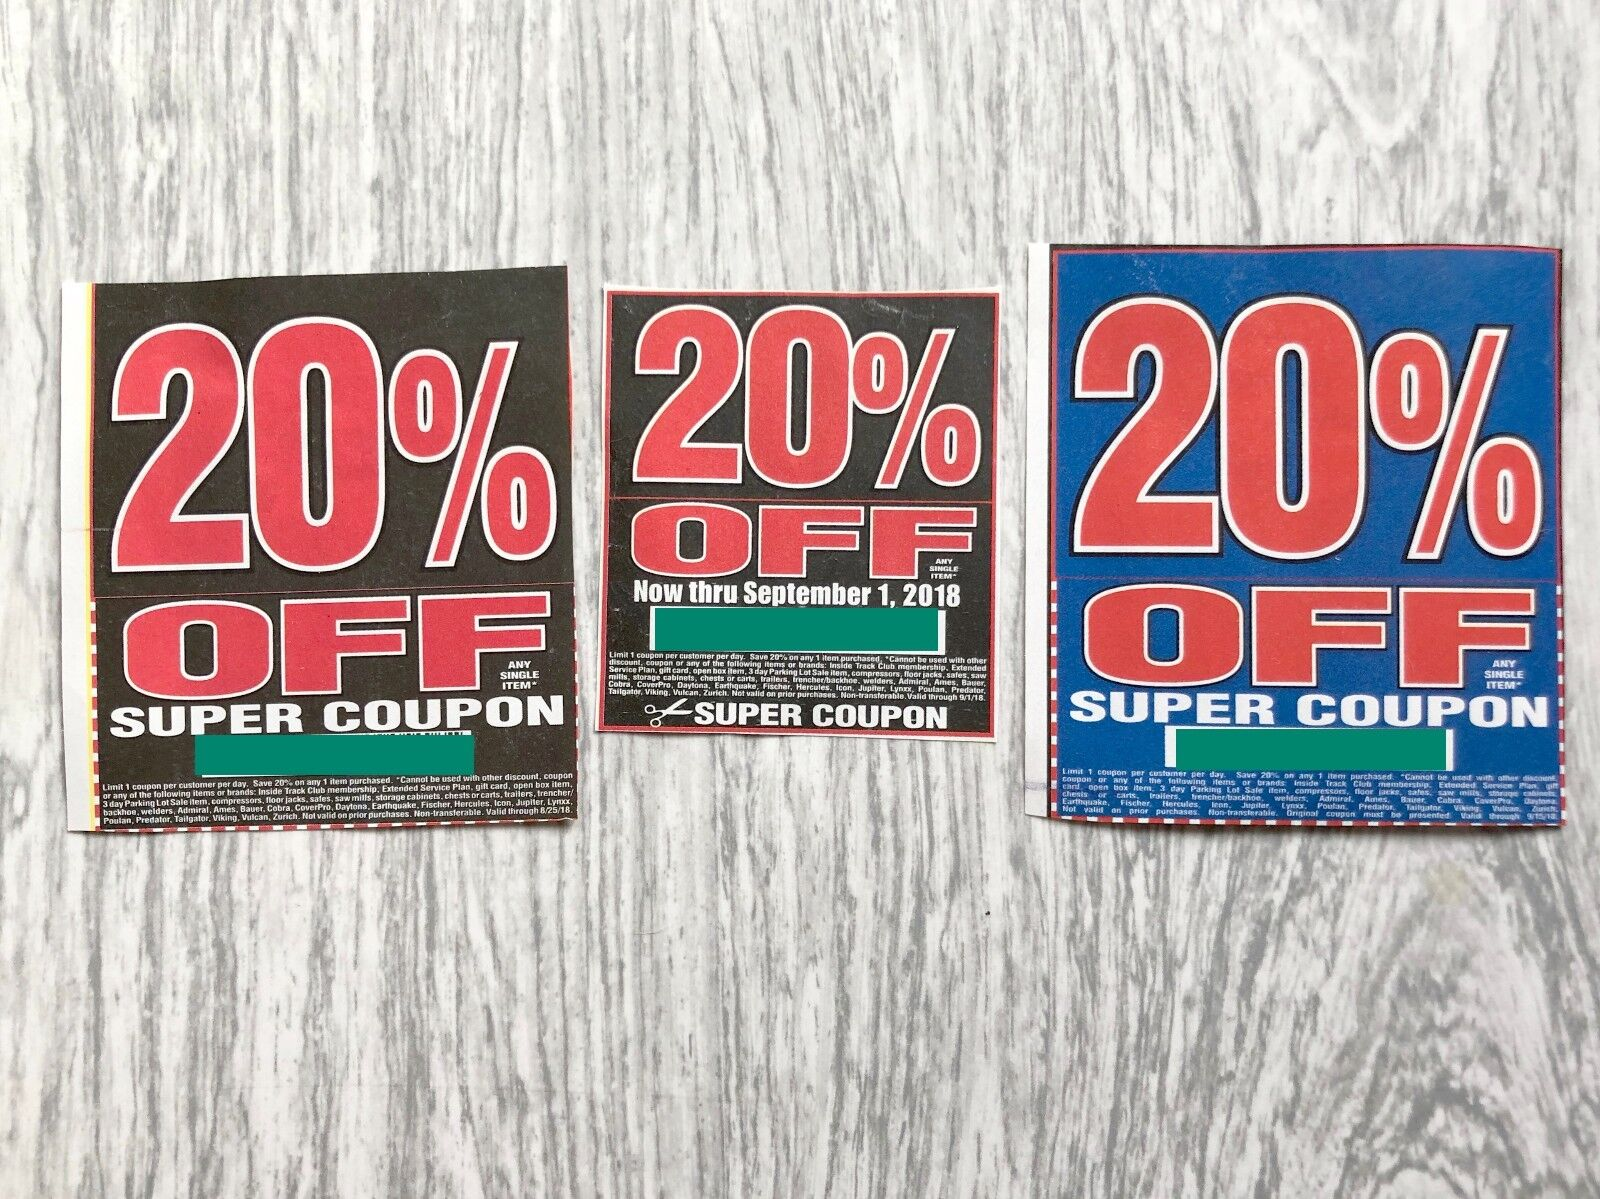 3 Harbor Freight Super Coupons 20 Off Any Item Home Depot 1 Of 1free Shipping See More